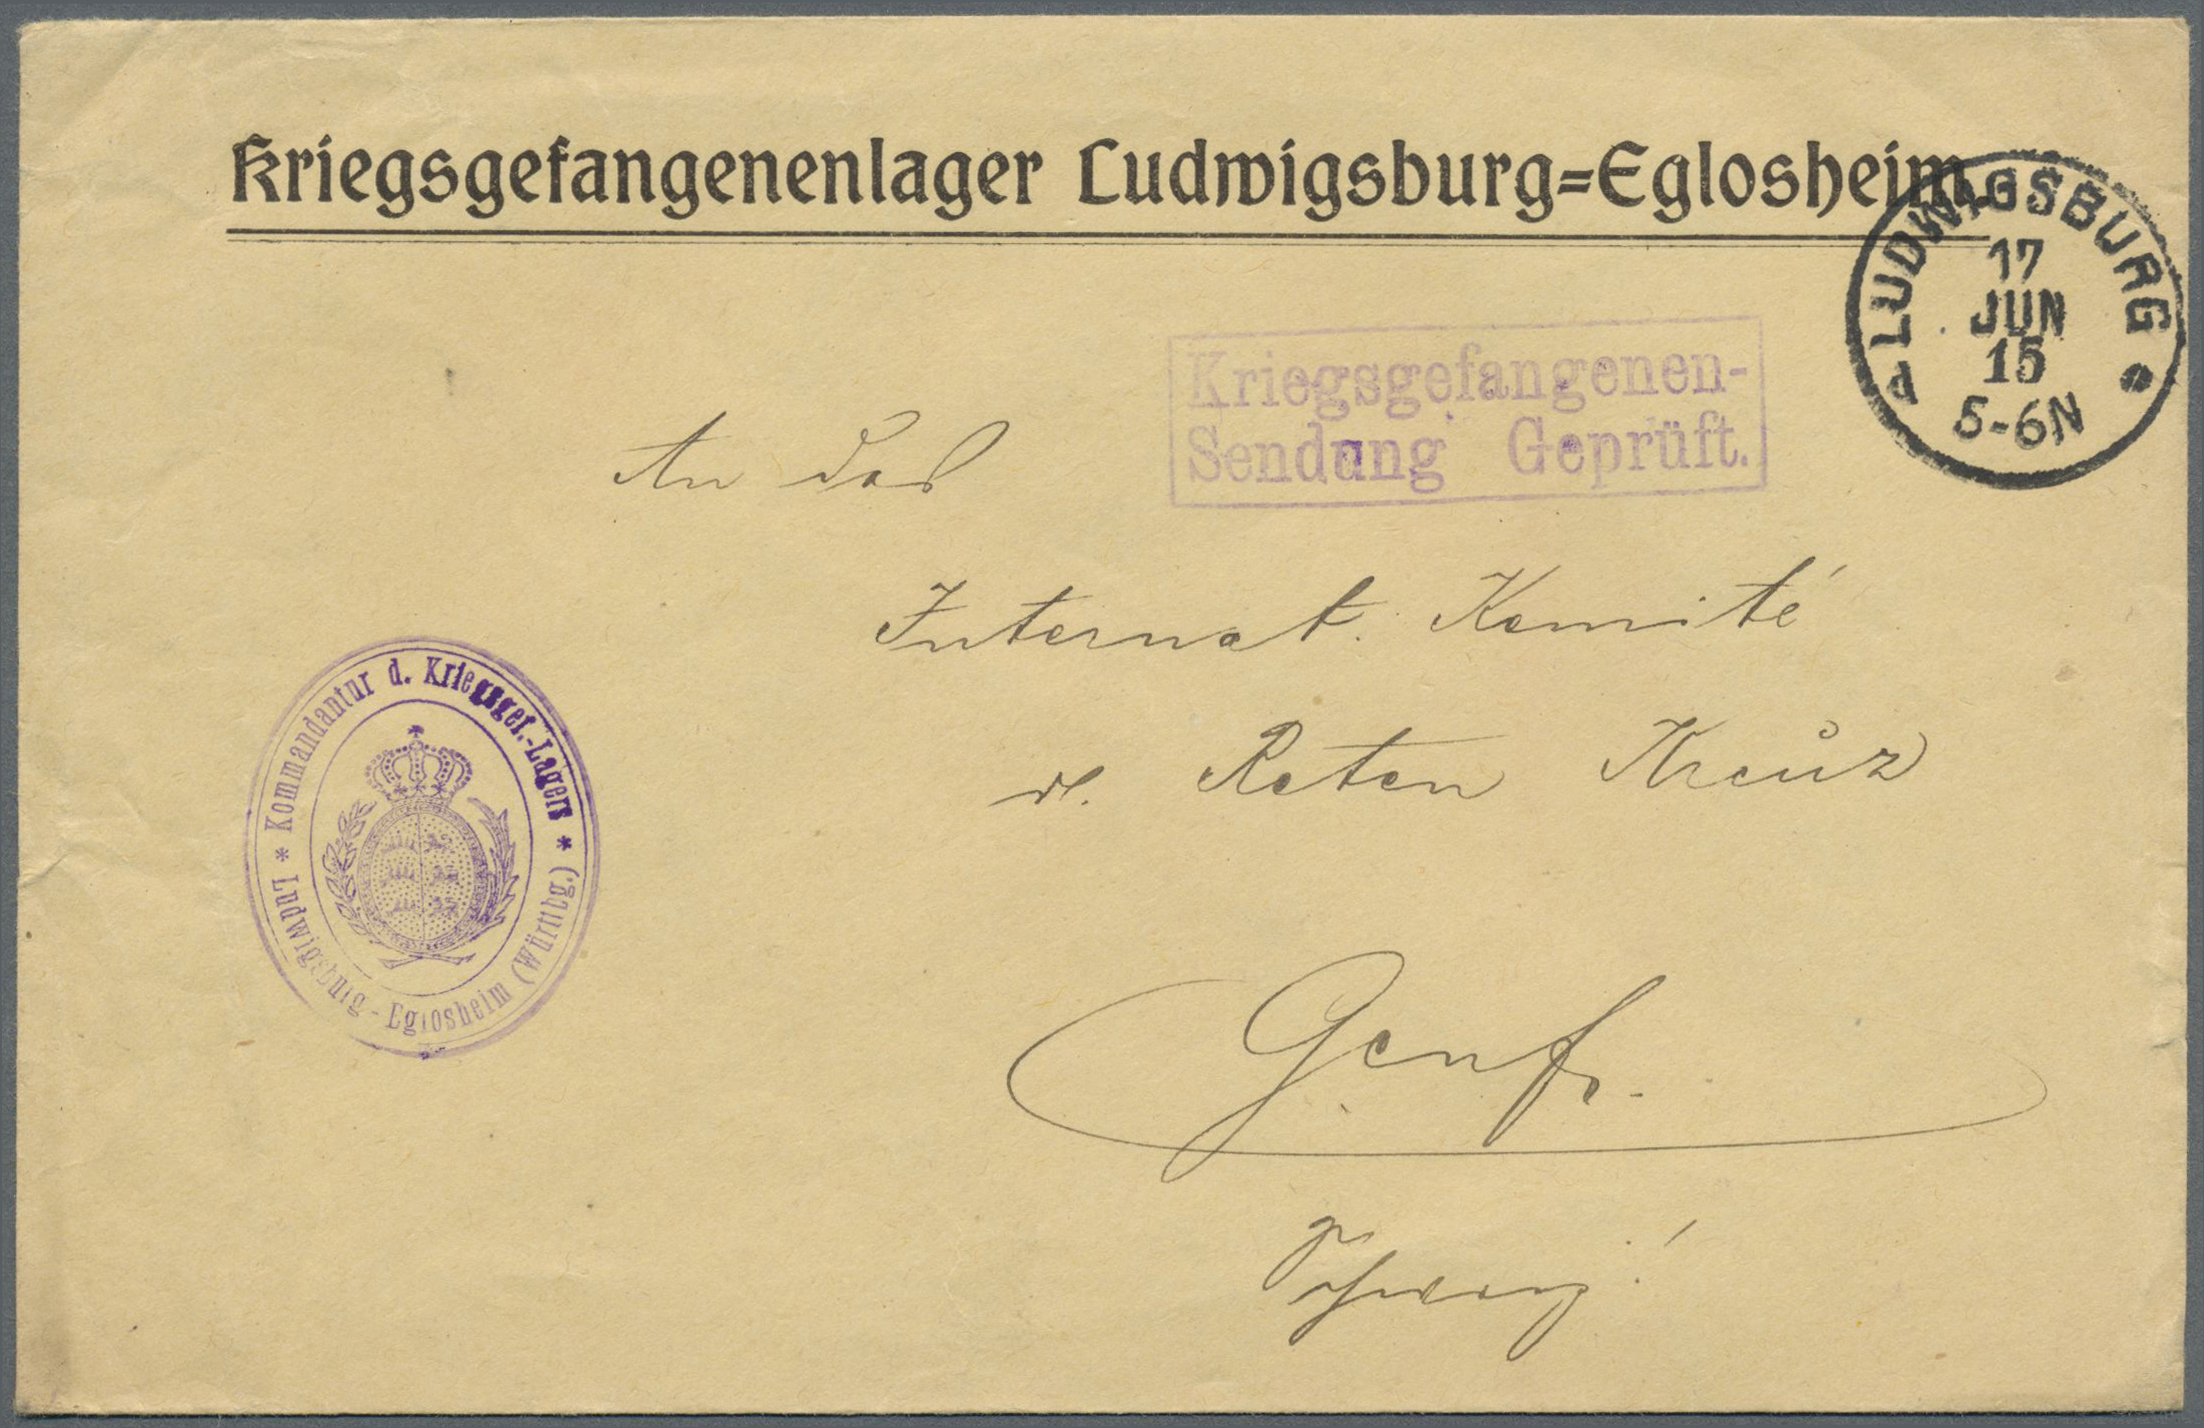 Lot 37633 - kriegsgefangenen-lagerpost  -  Auktionshaus Christoph Gärtner GmbH & Co. KG Collections Germany,  Collections Supplement, Surprise boxes #39 Day 7